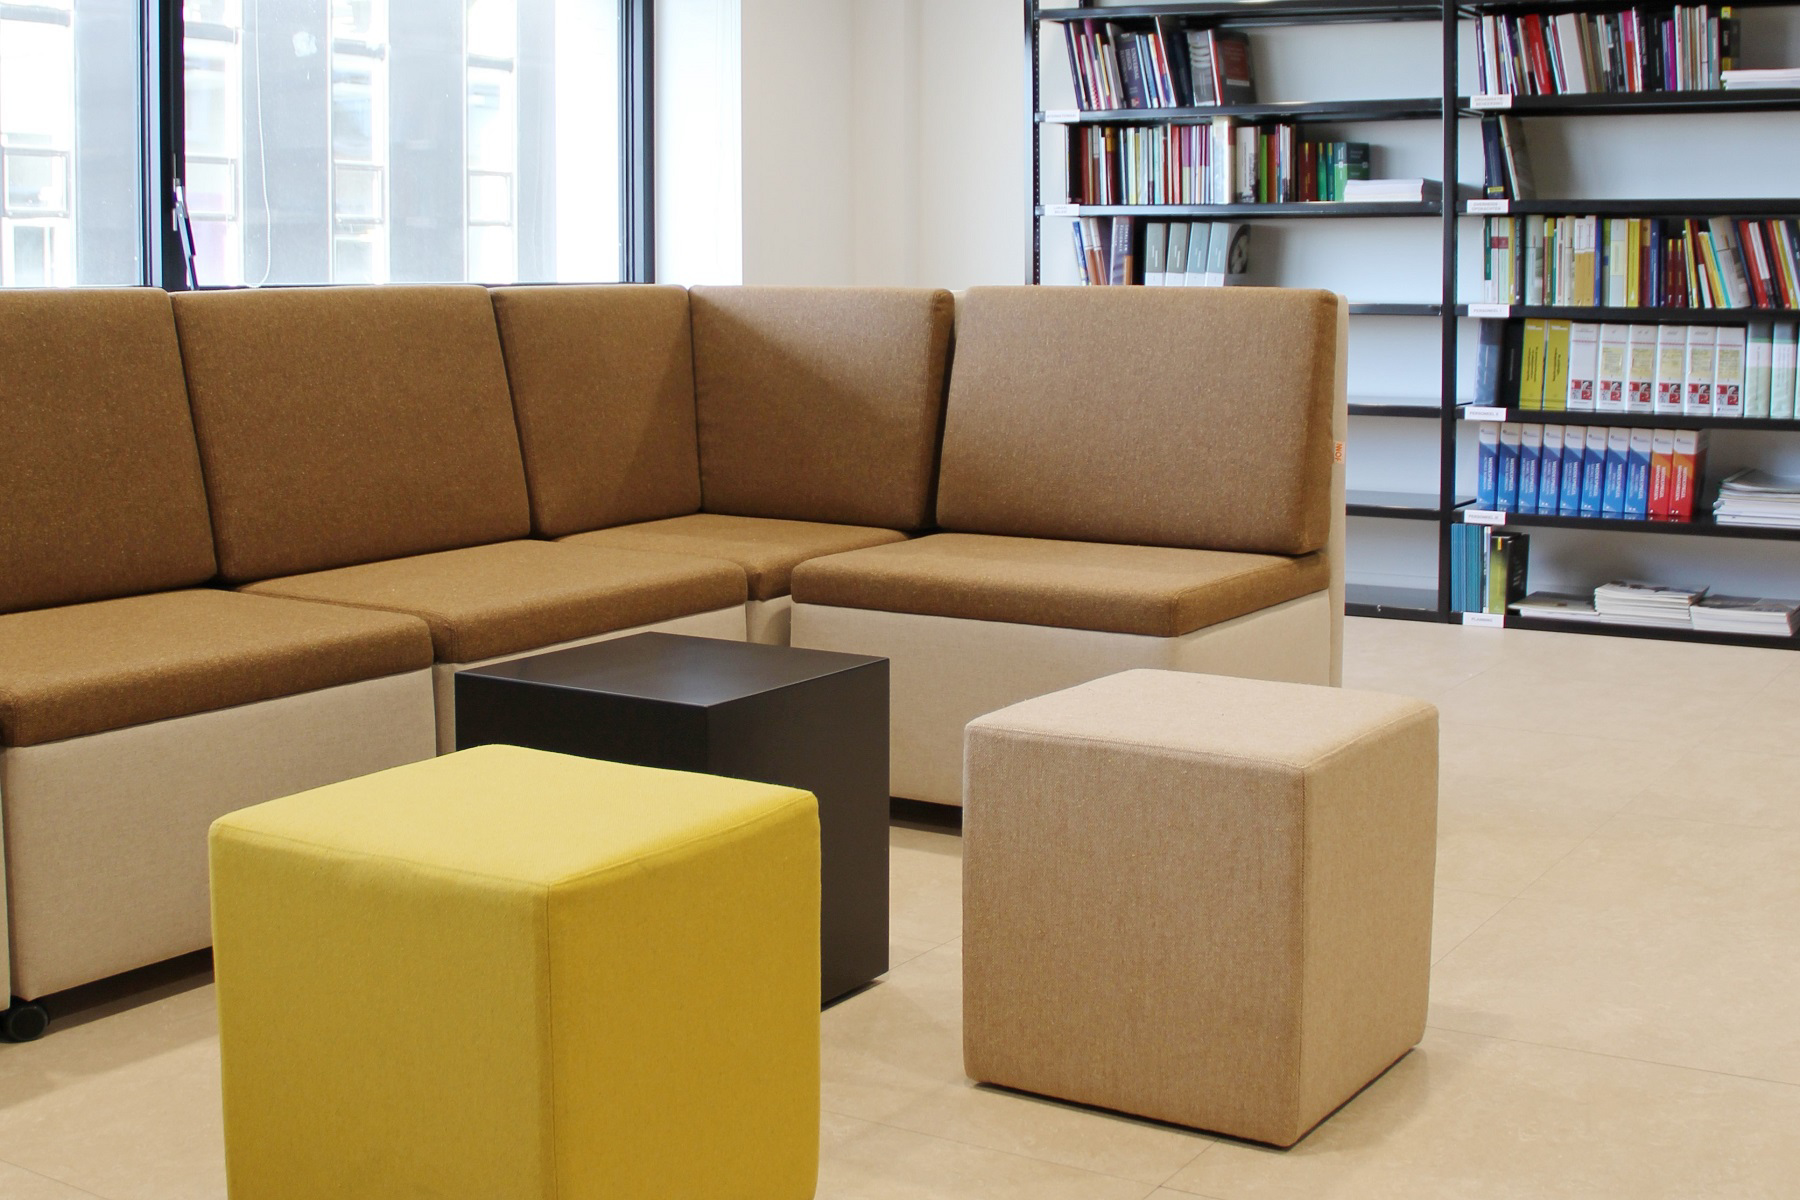 Picture for category Soft Seating Banken & Poefs